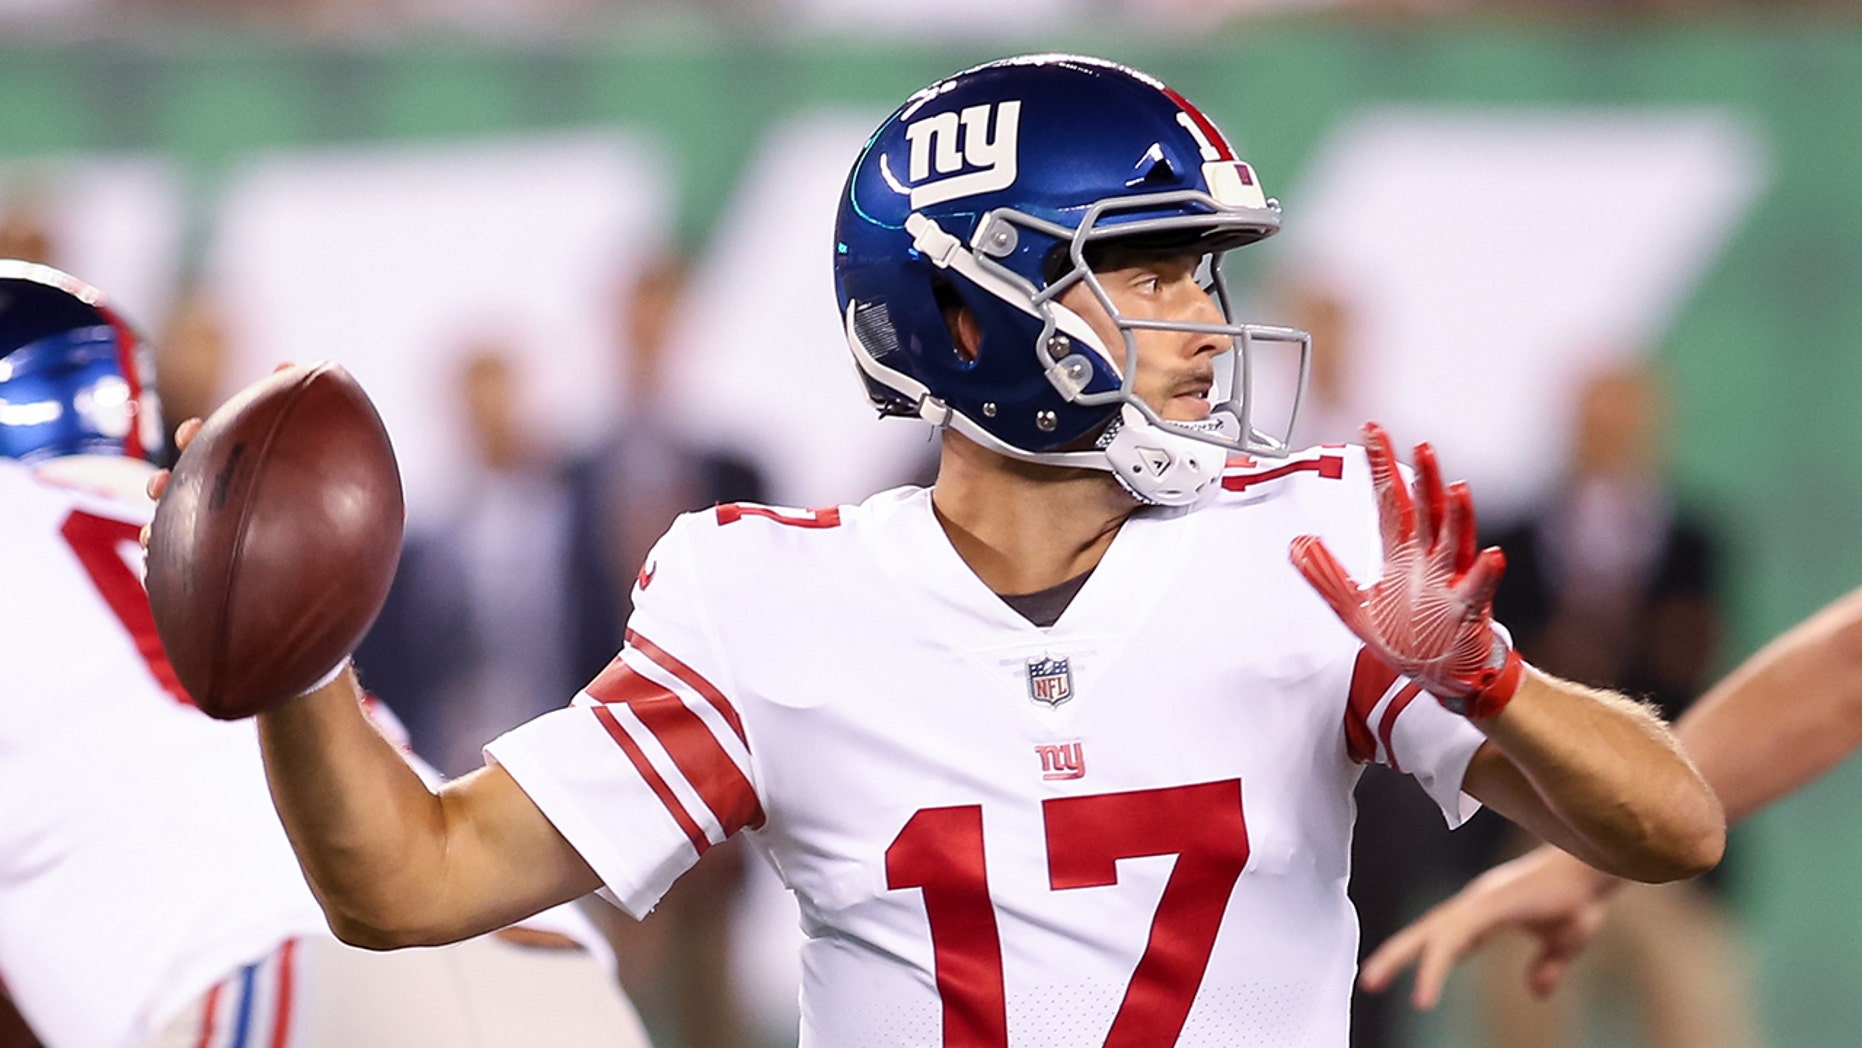 New York Giants quarterback Kyle Lauletta (17) in action during the National Football League preseason game between the New York Giants and the New York Jets on August 24, 2018 at MetLife Stadium in East Rutherford, NJ.